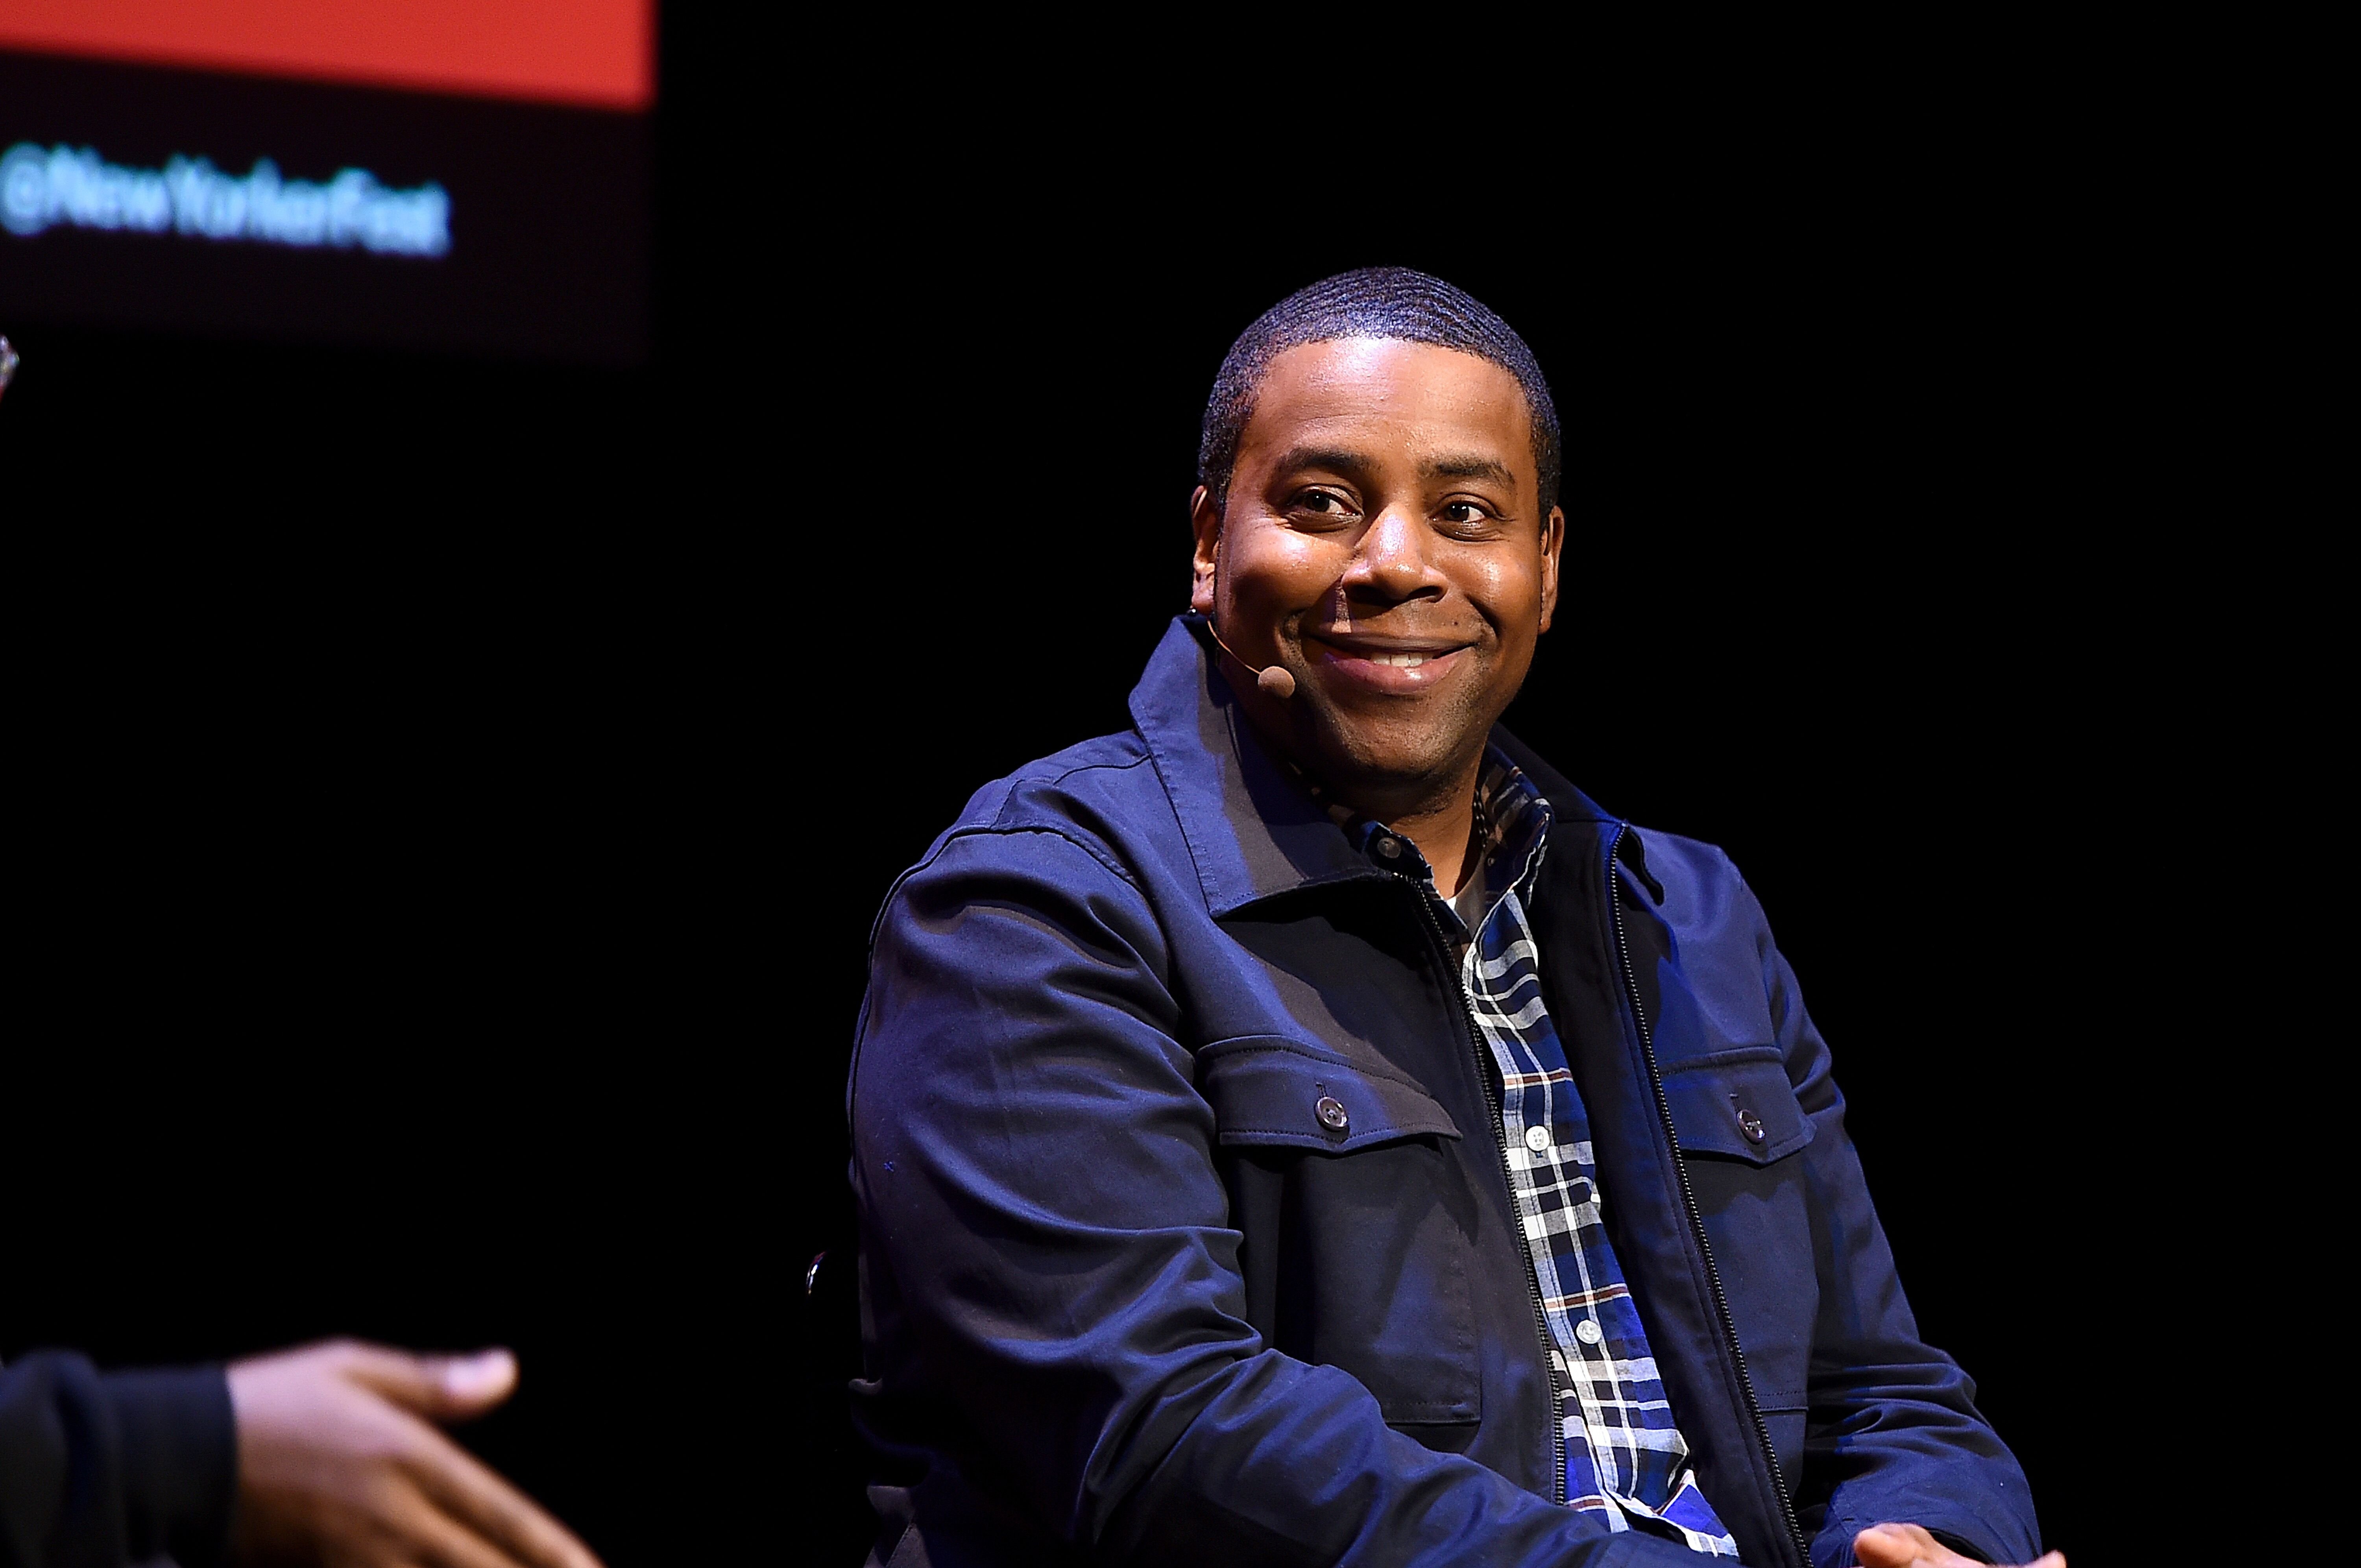 Kenan Thompson at the 2019 New Yorker Festival in 2019 | Source: Getty Images